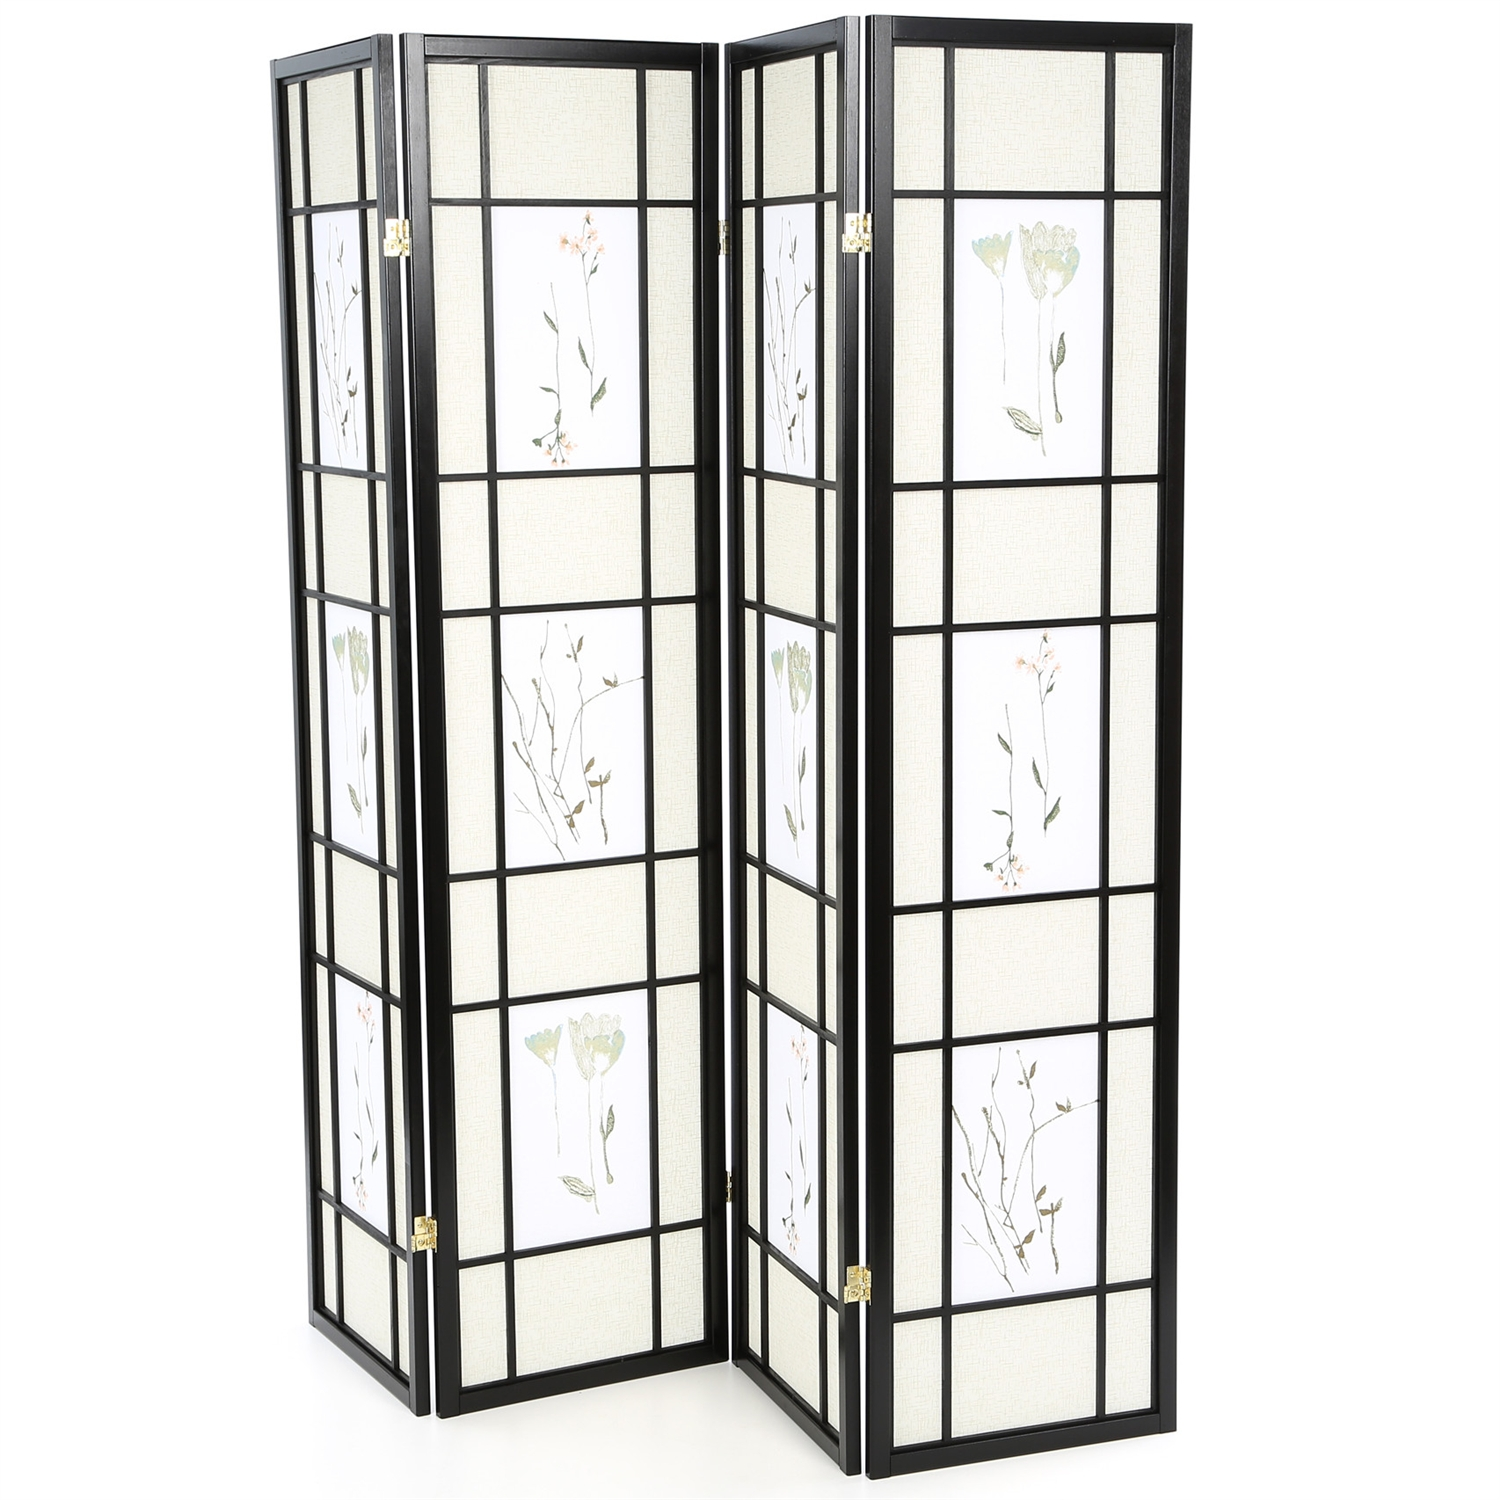 Black 4-Panel Room Divider Shoji Screen with Asian Floral Print, WFPRD9531 :  This Black 4-Panel Room Divider Shoji Screen with Asian Floral Print would be a great addition to your home. It has a black finish and floral print. Product Type: Folding; Style: Asian/Shoji; Theme: Asian; Primary Material: Cotton; Country of Manufacture: Malaysia.